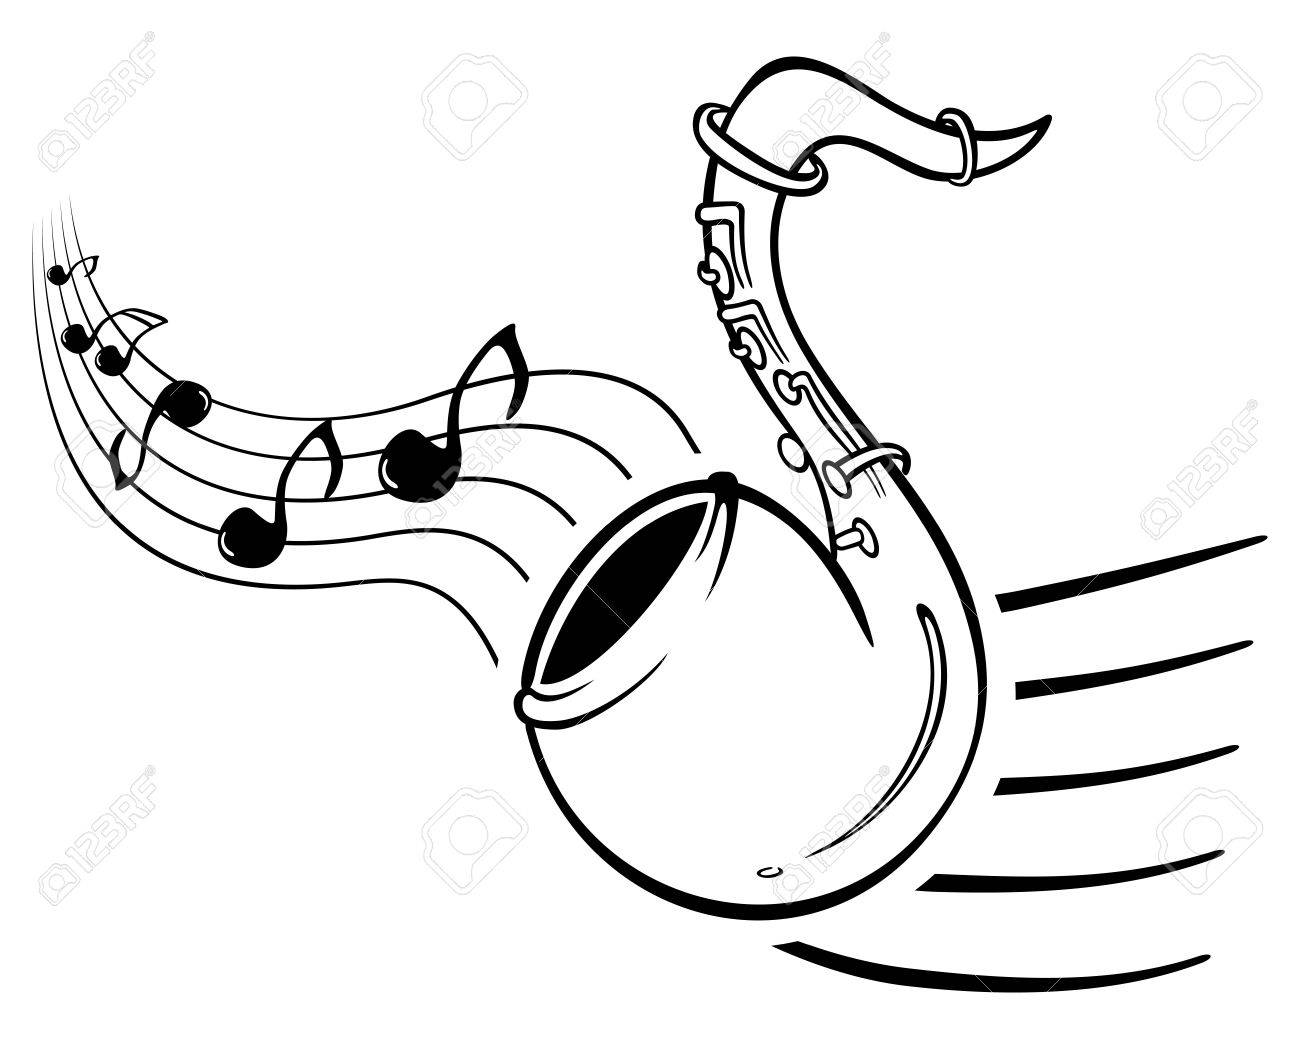 Design with music notes and sax on illustration Stock Vector - 13944085